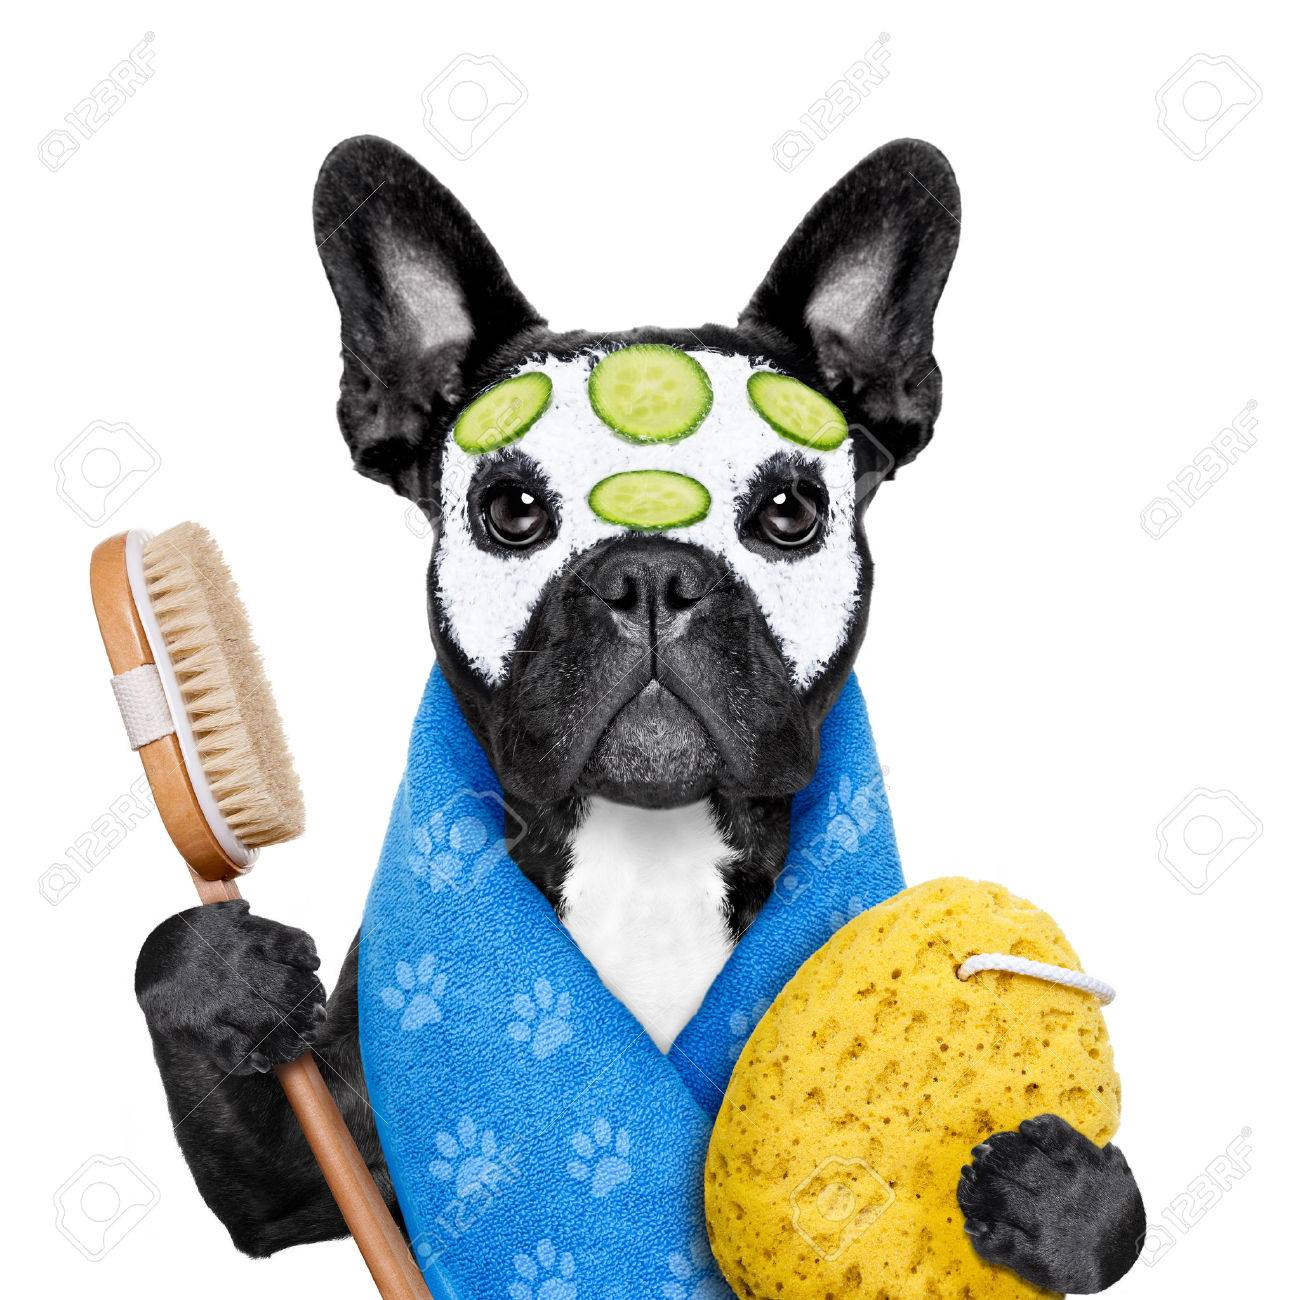 french bulldog dog relaxing with beauty mask in spa wellness center ,getting a facial treatment with moisturizing cream mask and cucumber , sponge and brush, isolated on white background - 51513025